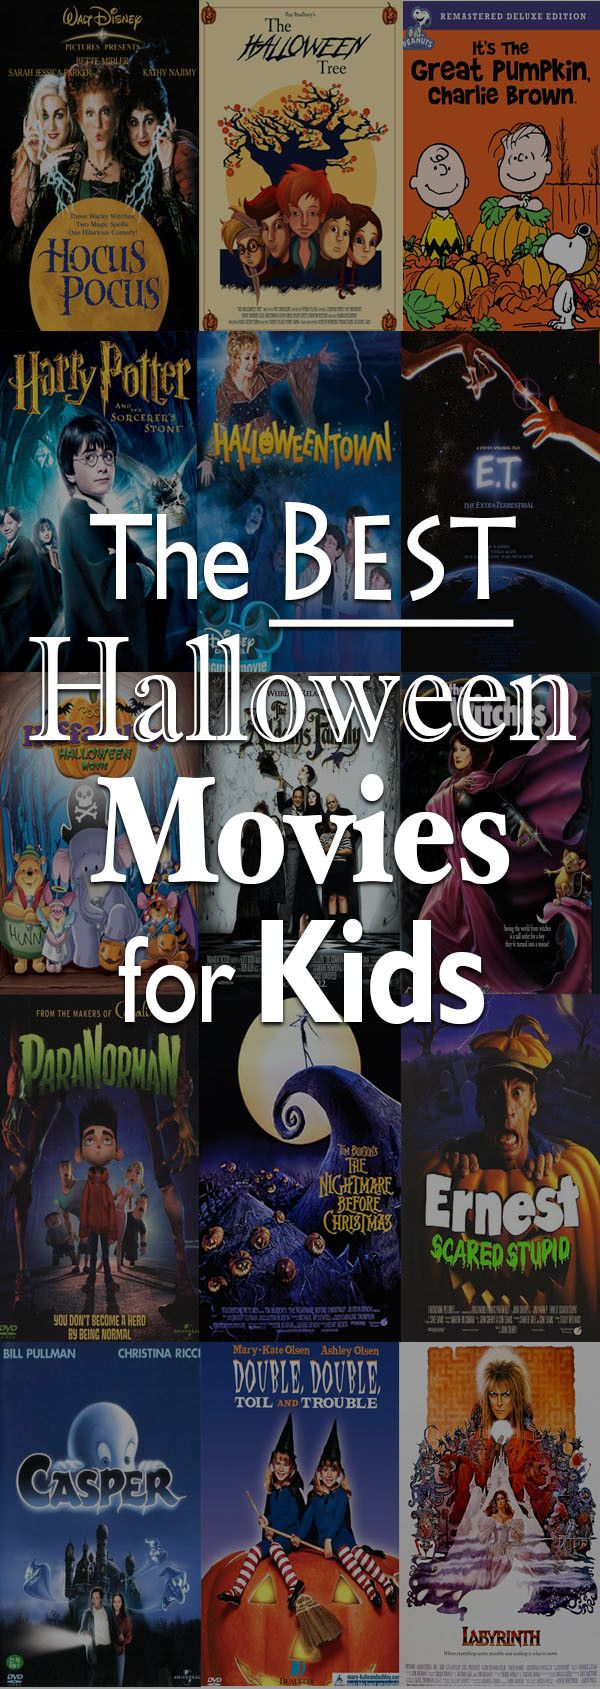 The Best Halloween Movies for Kids                                                                                                                                                      More